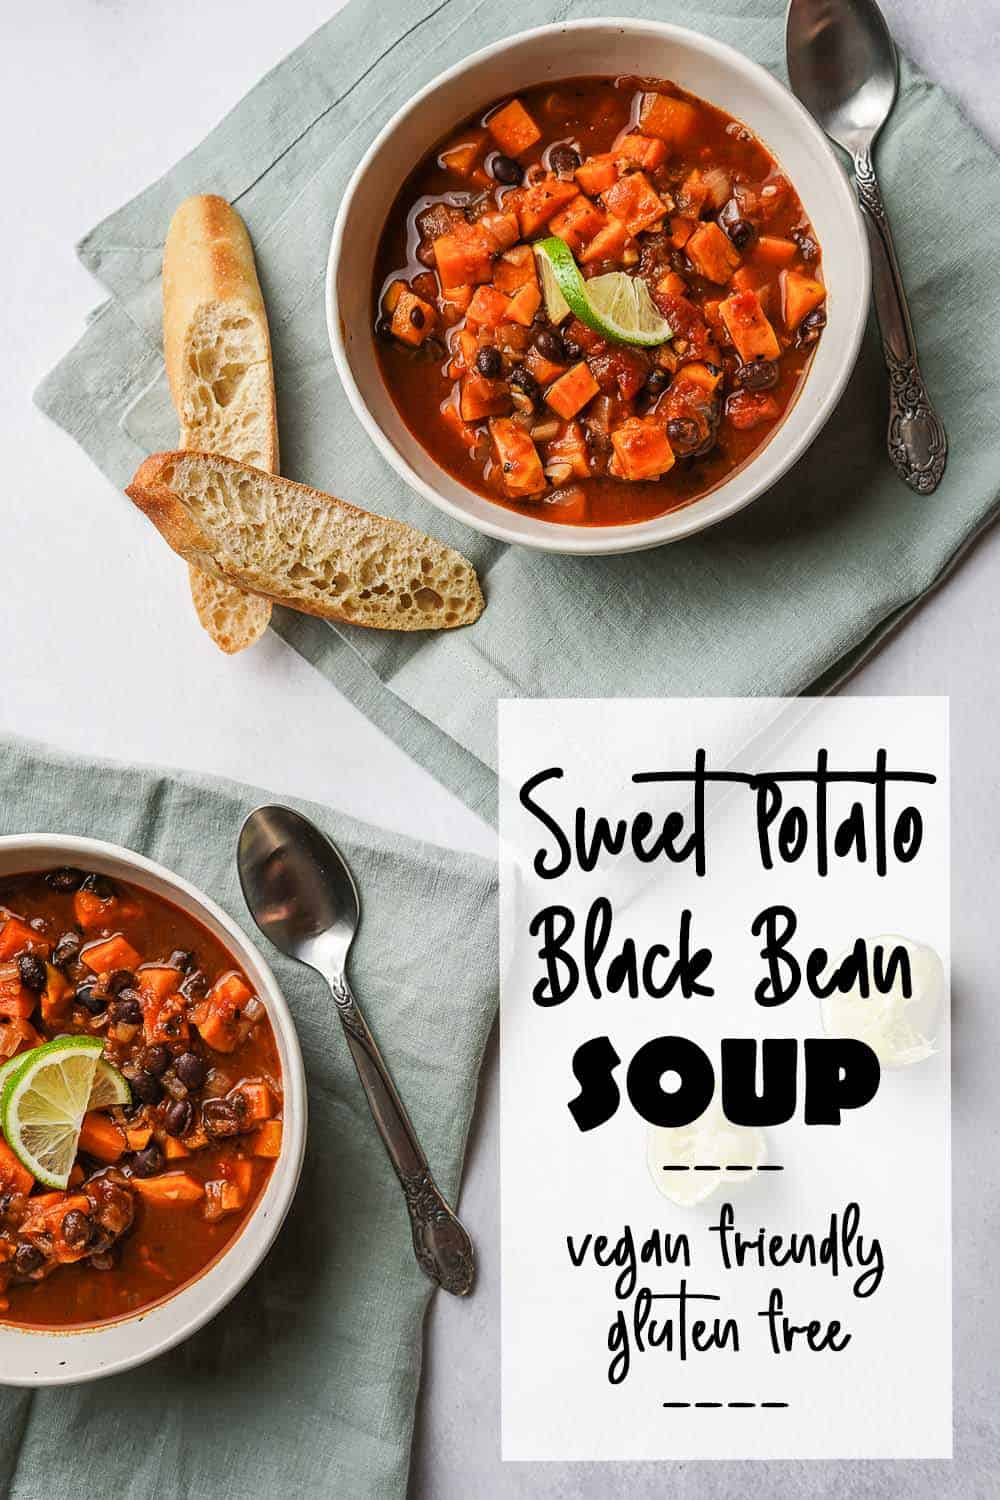 Sweet Potato Black Bean Soup in two bowls with bread on the side